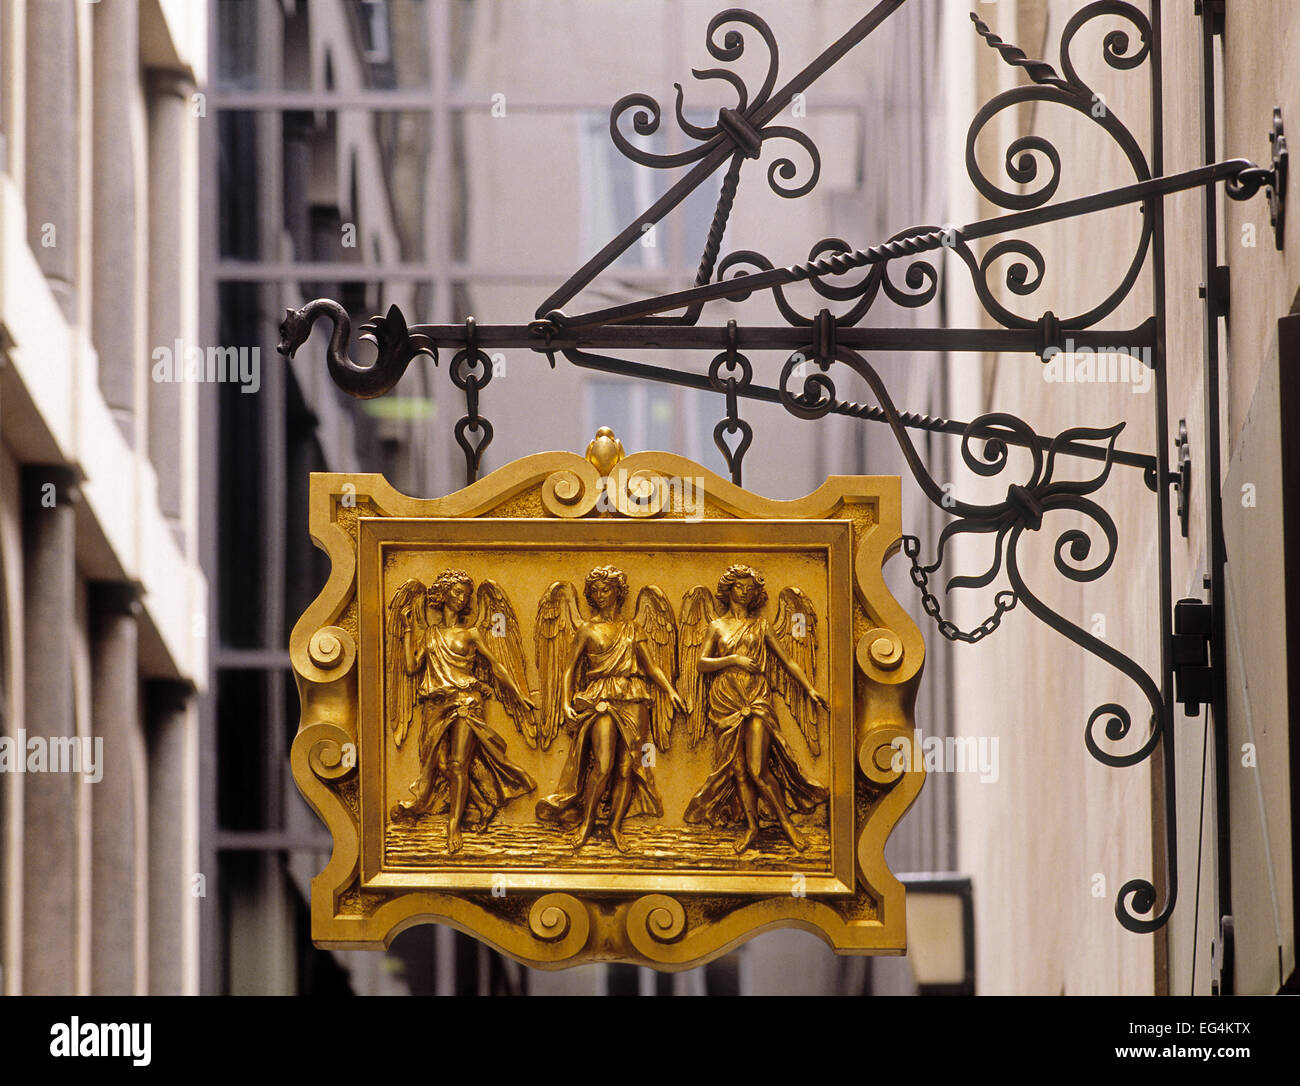 Historic sign in the City of London showing three angels Stock Photo